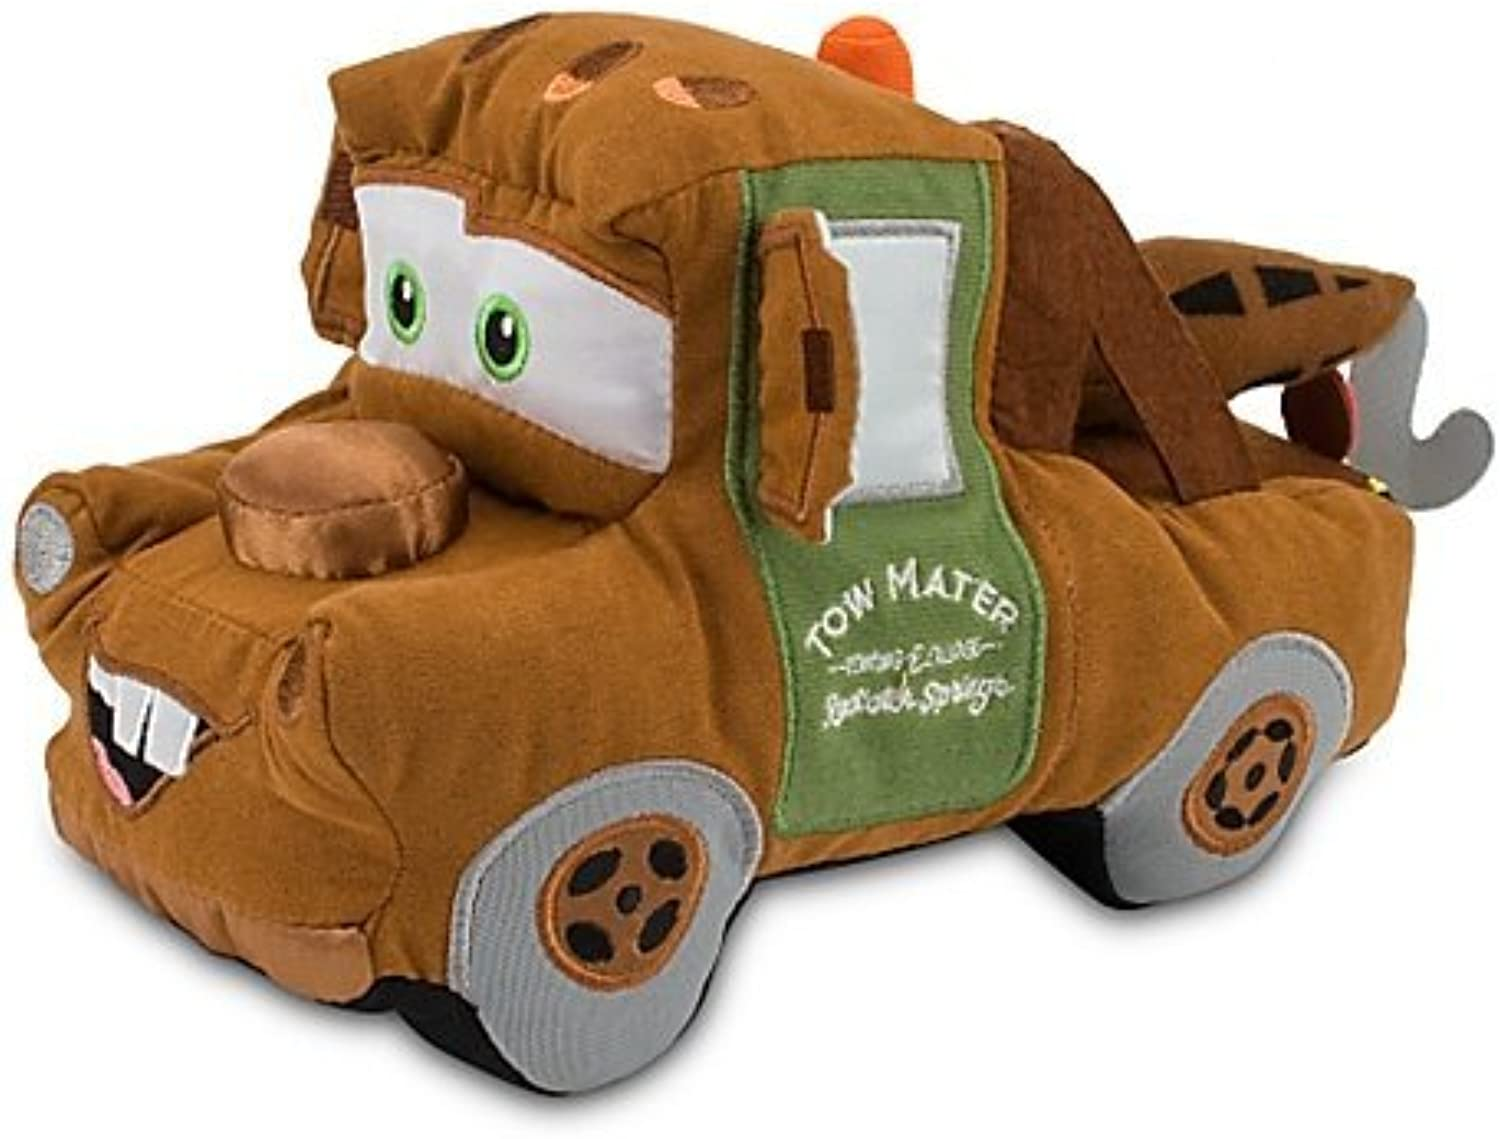 Disney Pixar Cars 2 Movie Exclusive 8 Inch Plush Tow Mater by Disney Interactive Studios